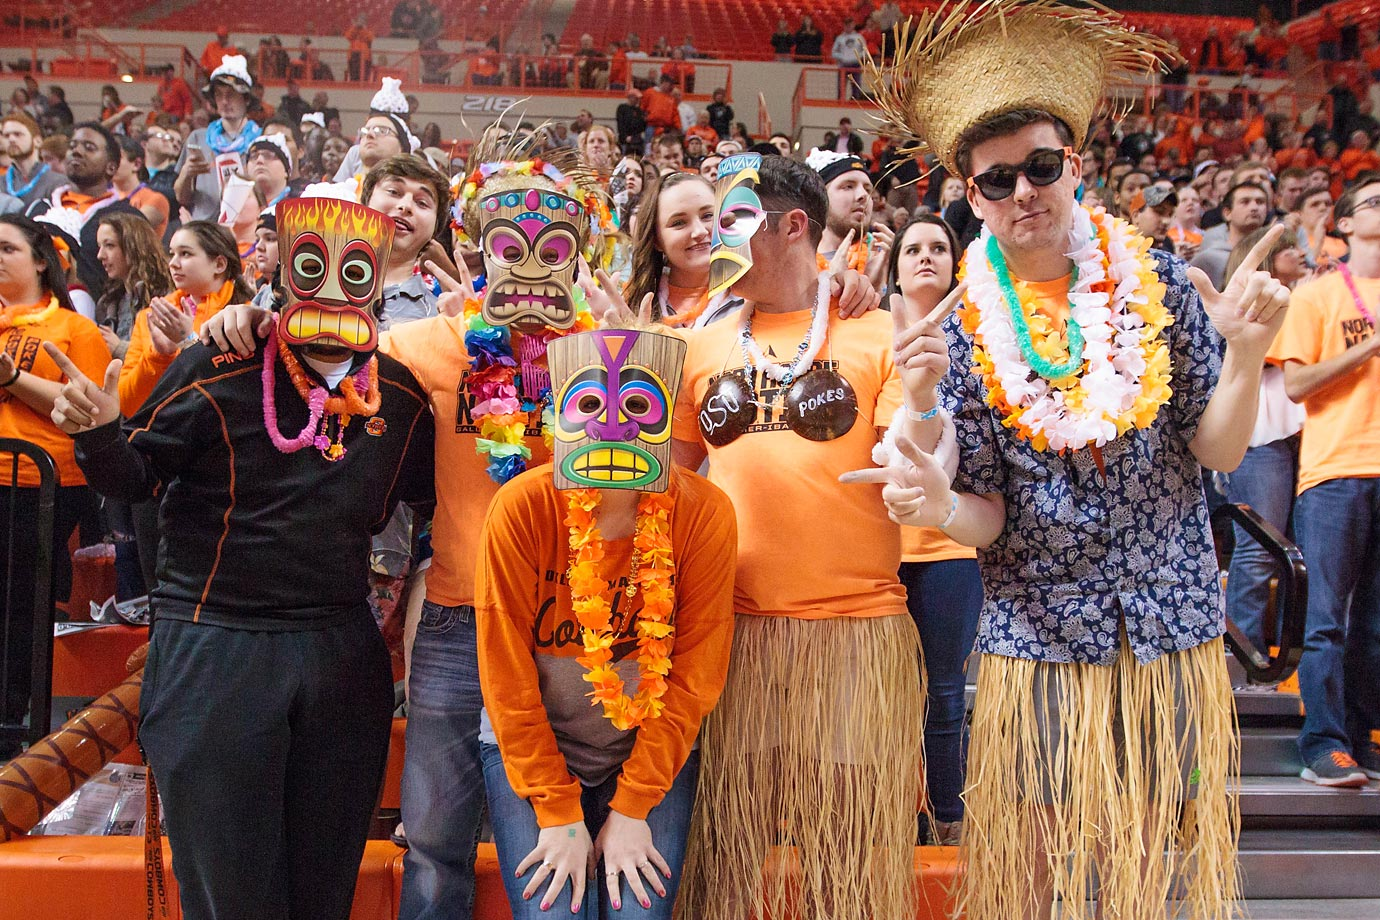 Oklahoma State Cowboys fans during their game against the Iowa State Cyclones. Iowa State defeated Oklahoma State 70-65.